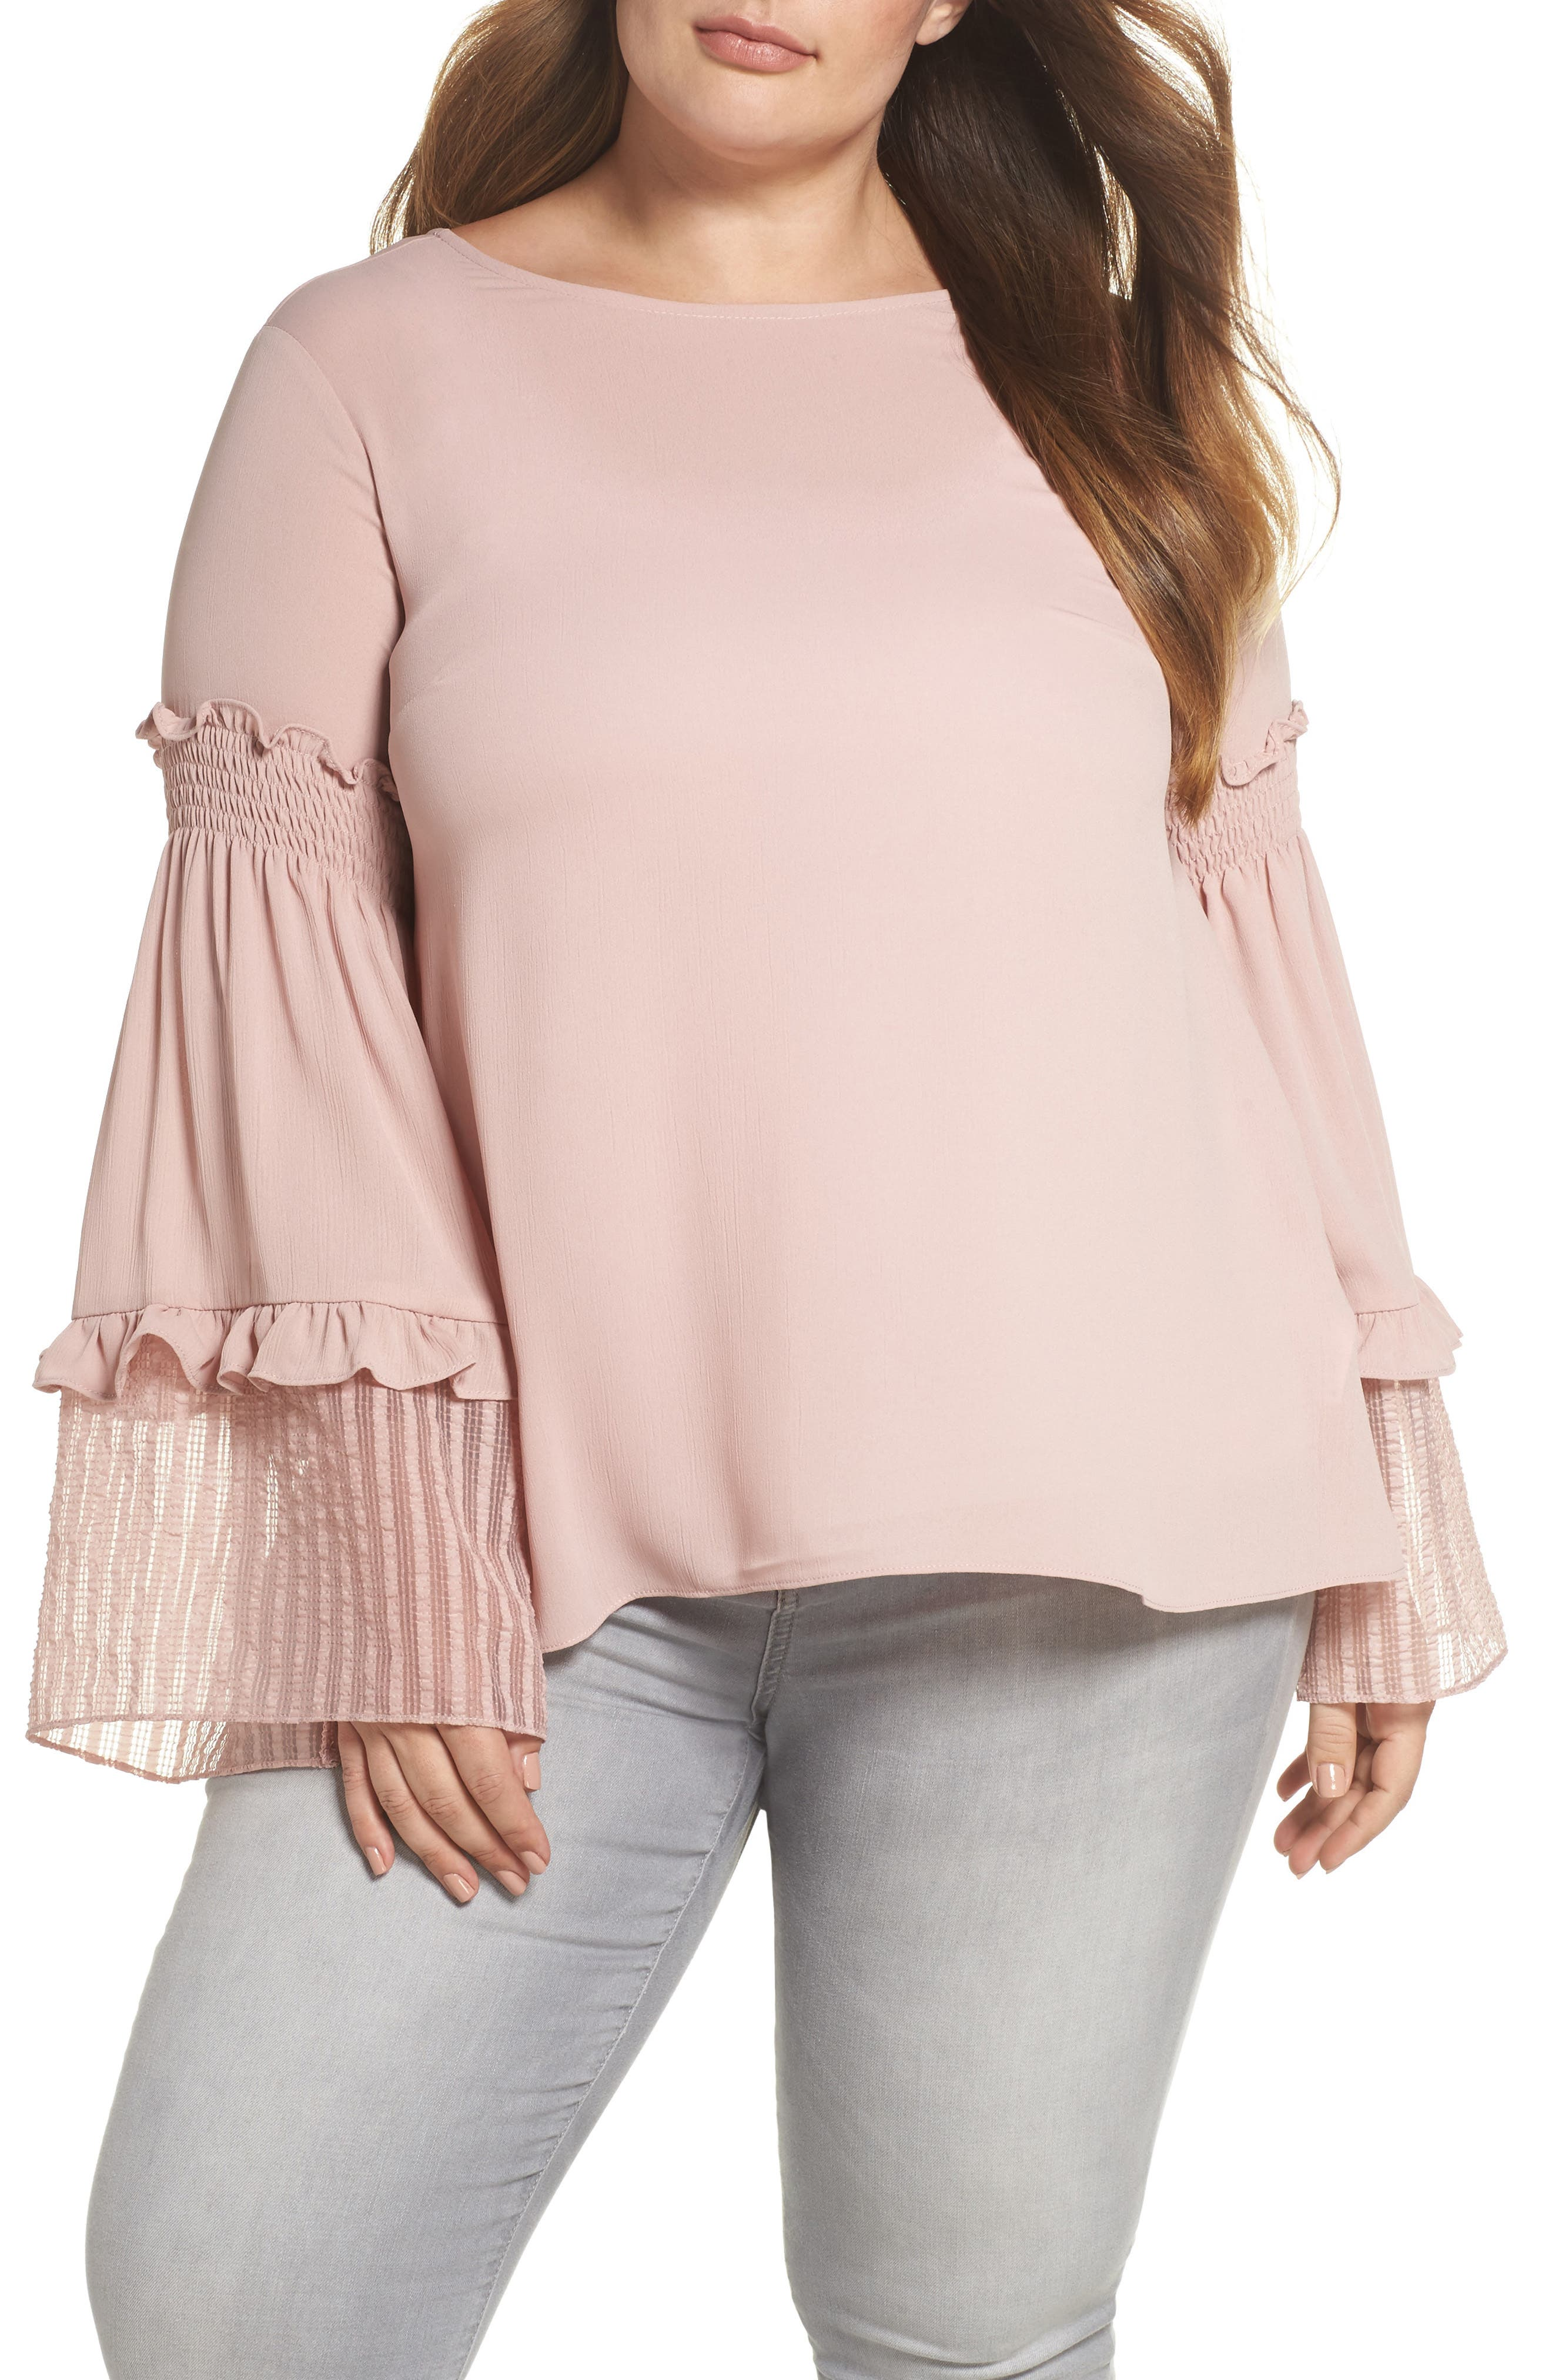 LOST INK Shirred Sleeve Top (Plus Size)